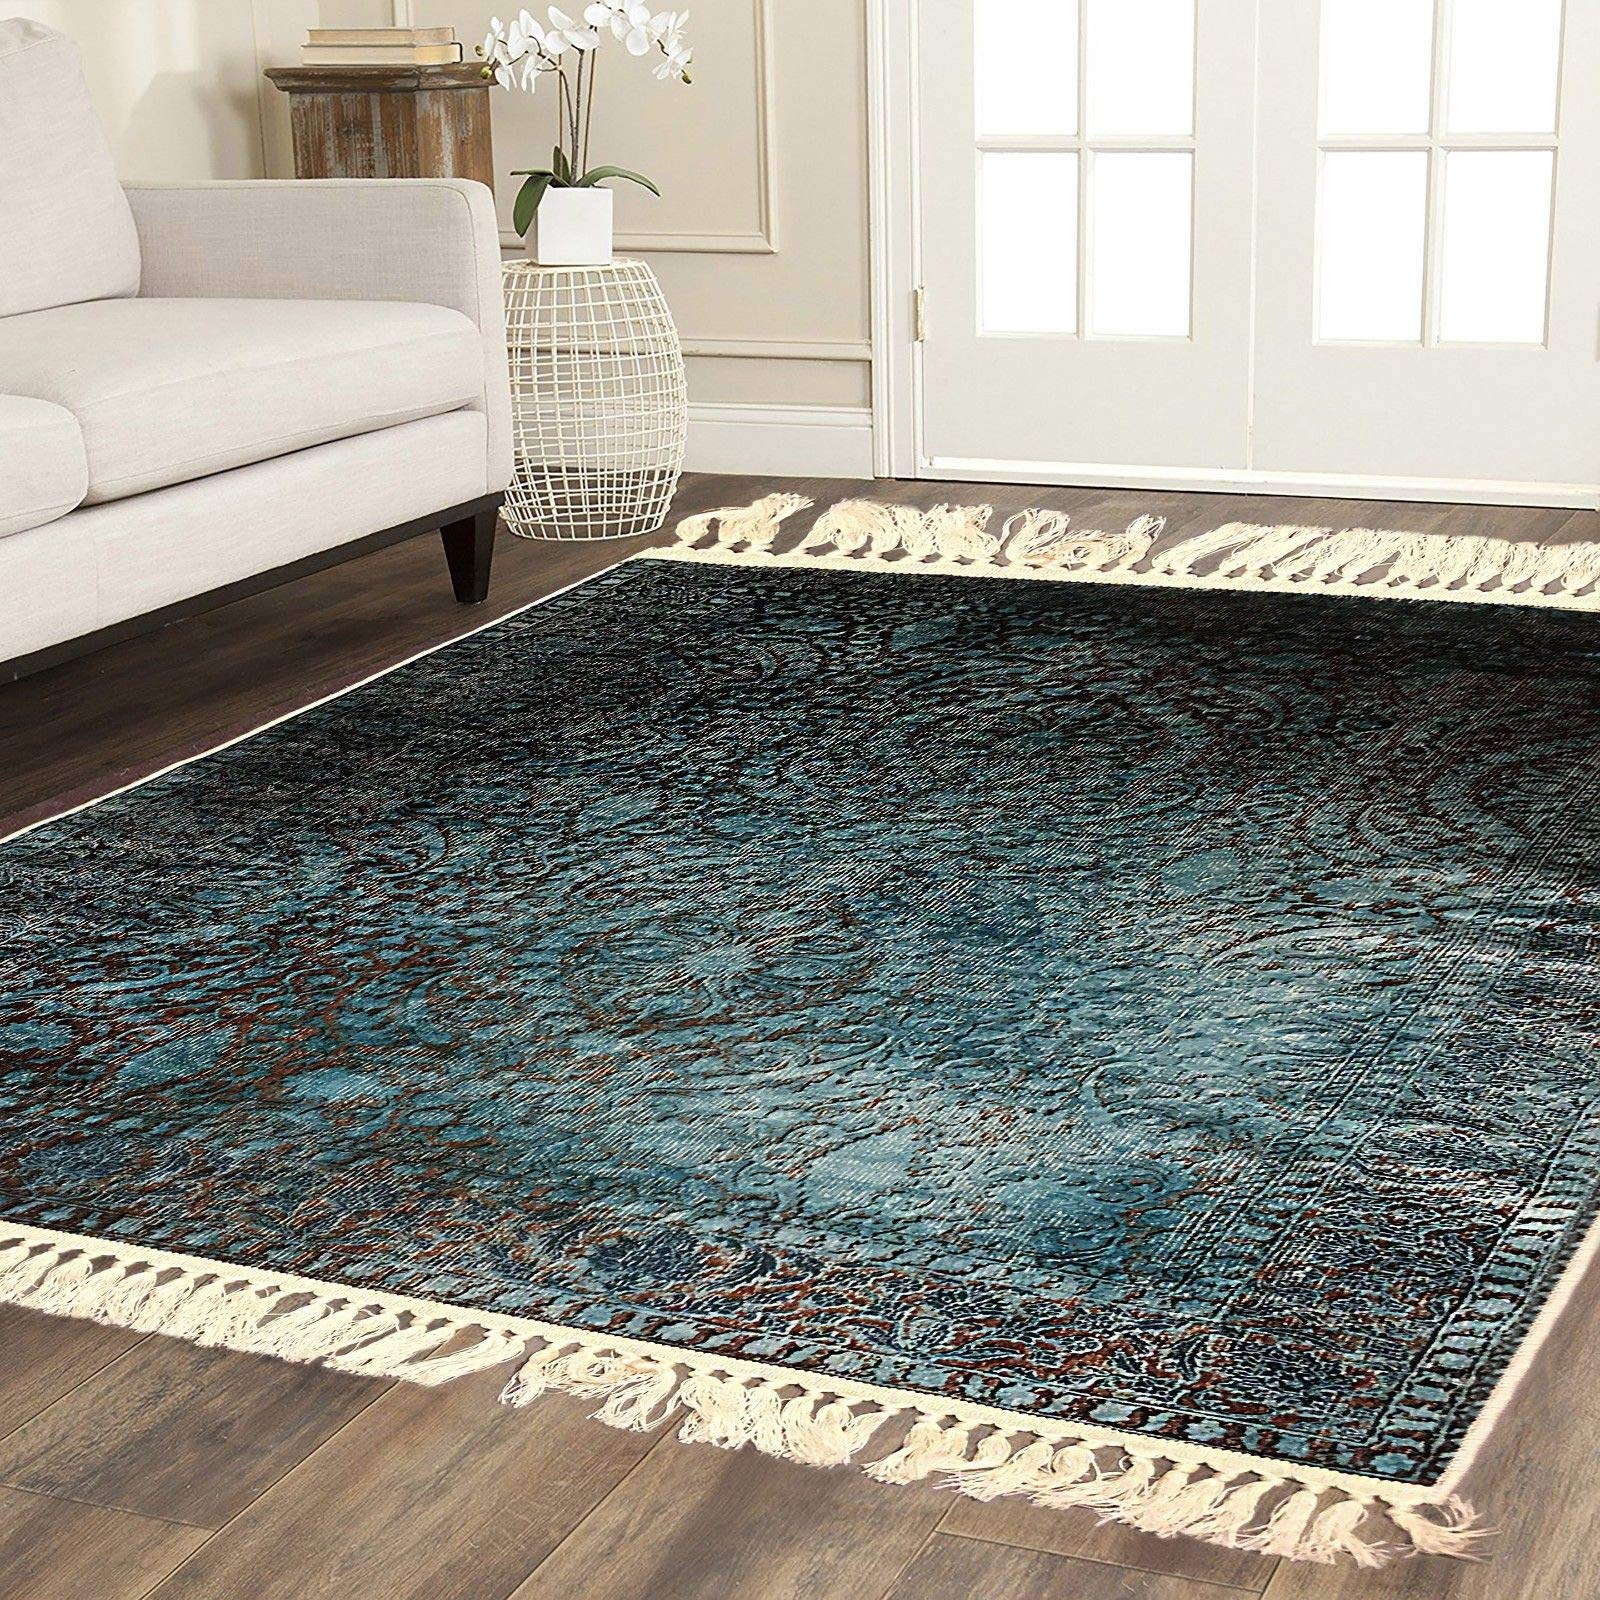 Home Must Haves Blue Brown Faux Silky Luxury Persian Oriental Flat Weave High Density Hand-Knotted Large Area Rug Carpet For Any Living Room Bedroom Kitchen Room Home (5'3'' x 7'6'')